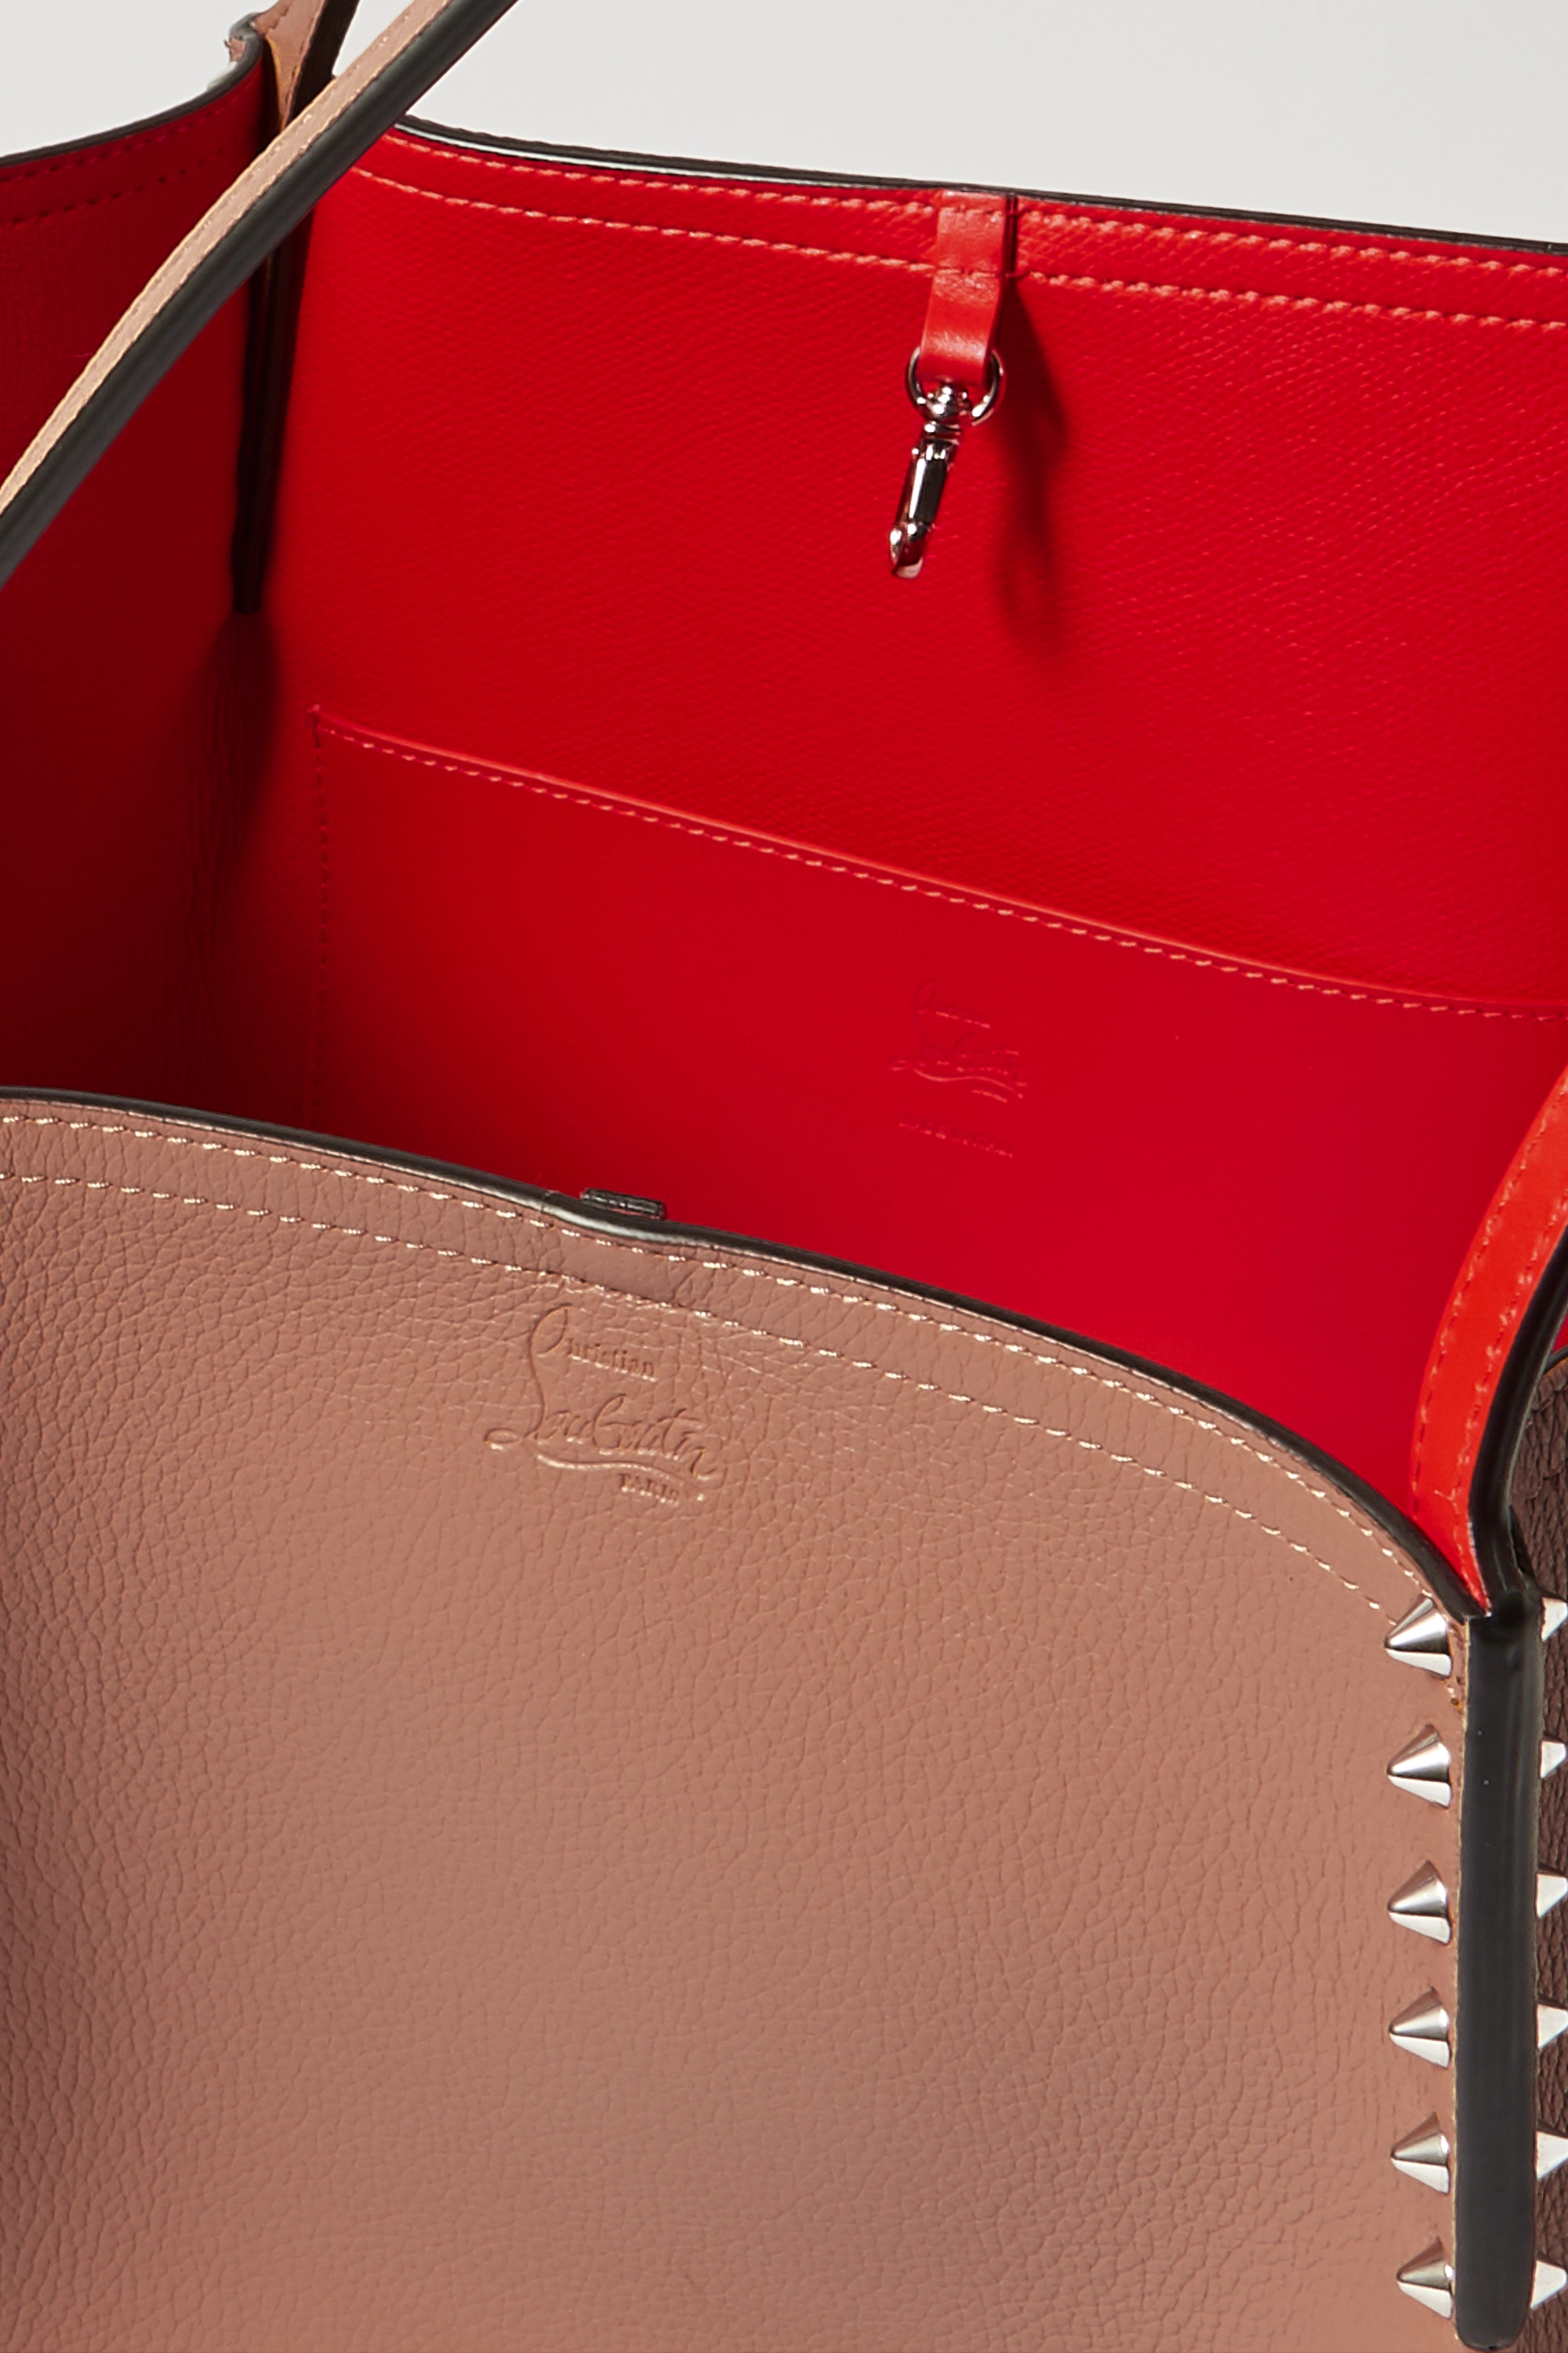 Christian Louboutin Cabarock spiked leather tote